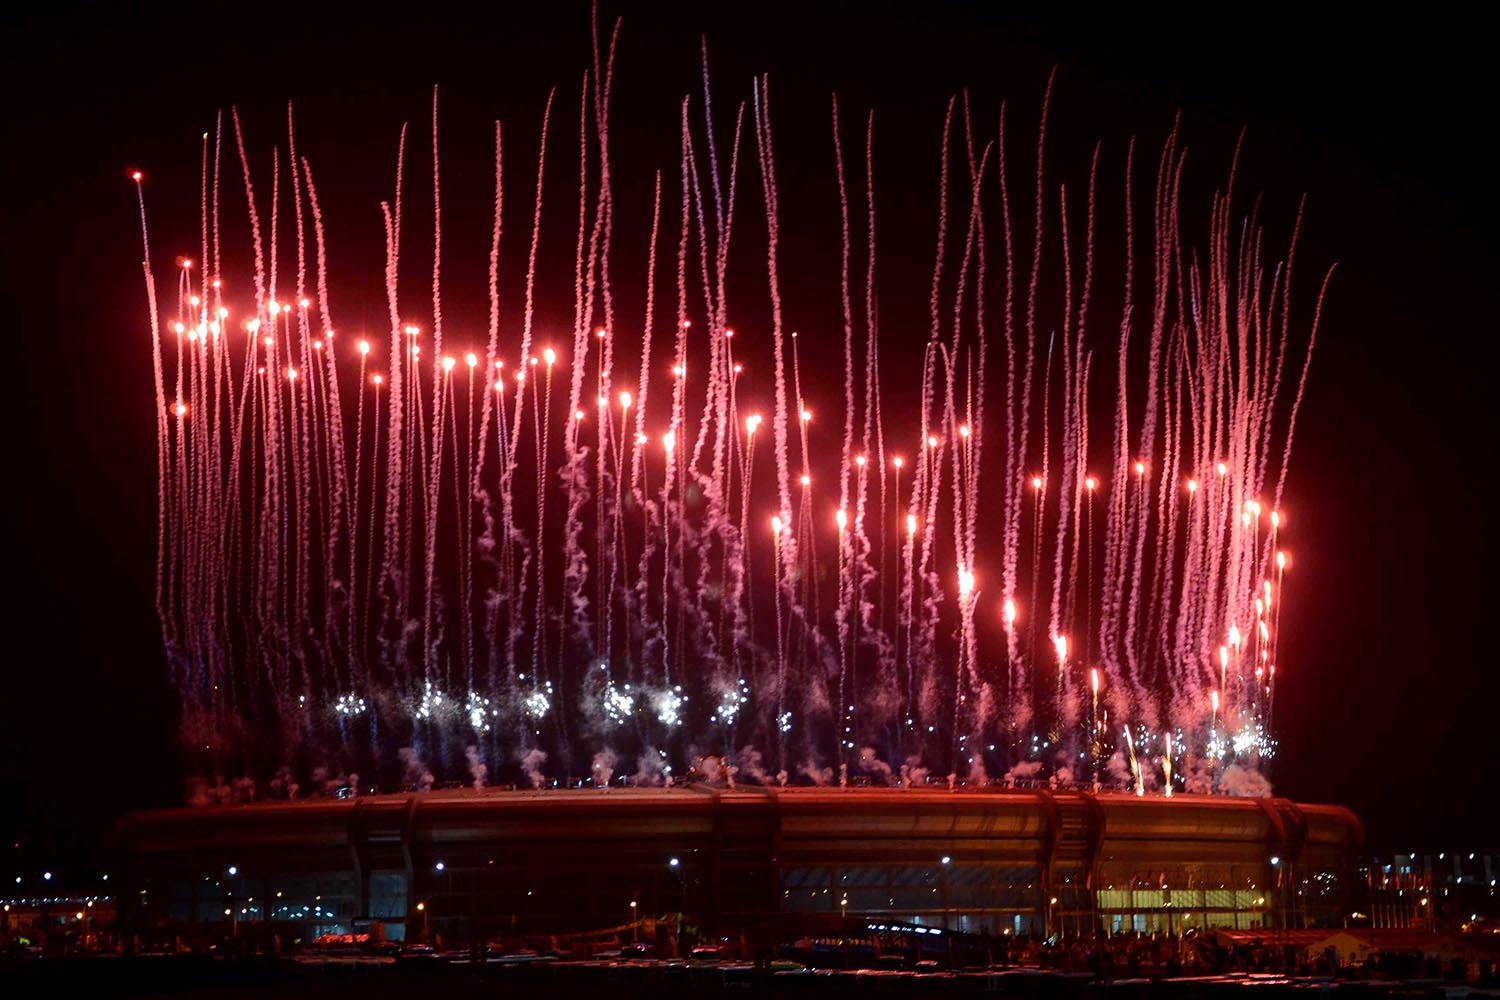 Dec. 11, 2013. In this photo provided by the Myanmar News Agency, fireworks illuminate the sky above the Wunna Theikdi Stadium during the opening ceremony of the 27th South East Asia (SEA) Games in Naypyitaw, Myanmar.